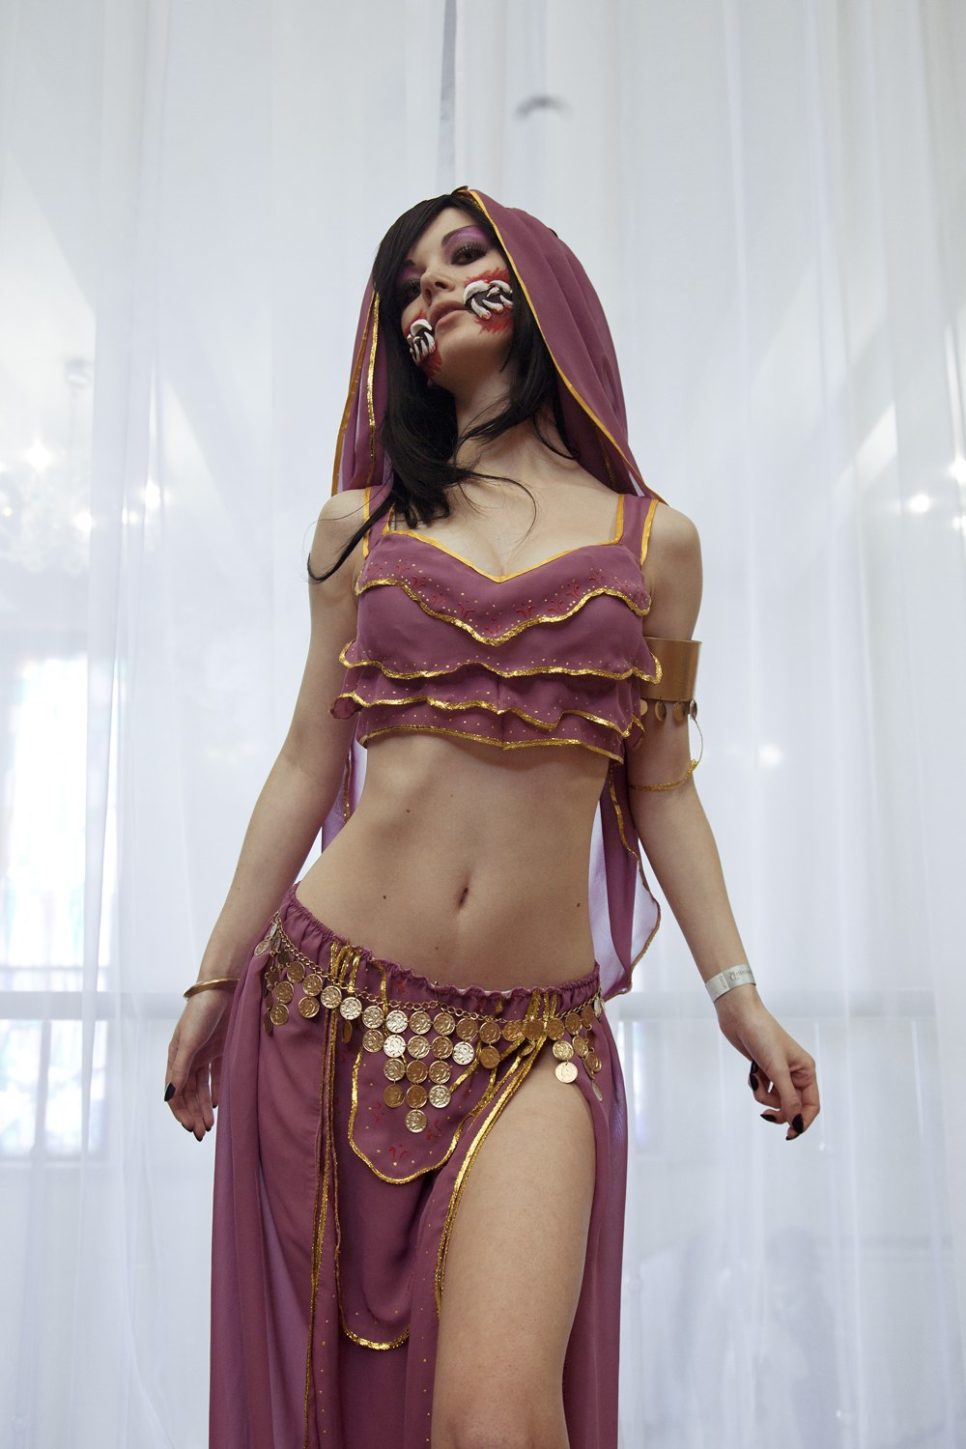 Mileena Belly Dancer z Mortal Kombat - czas na cosplay!